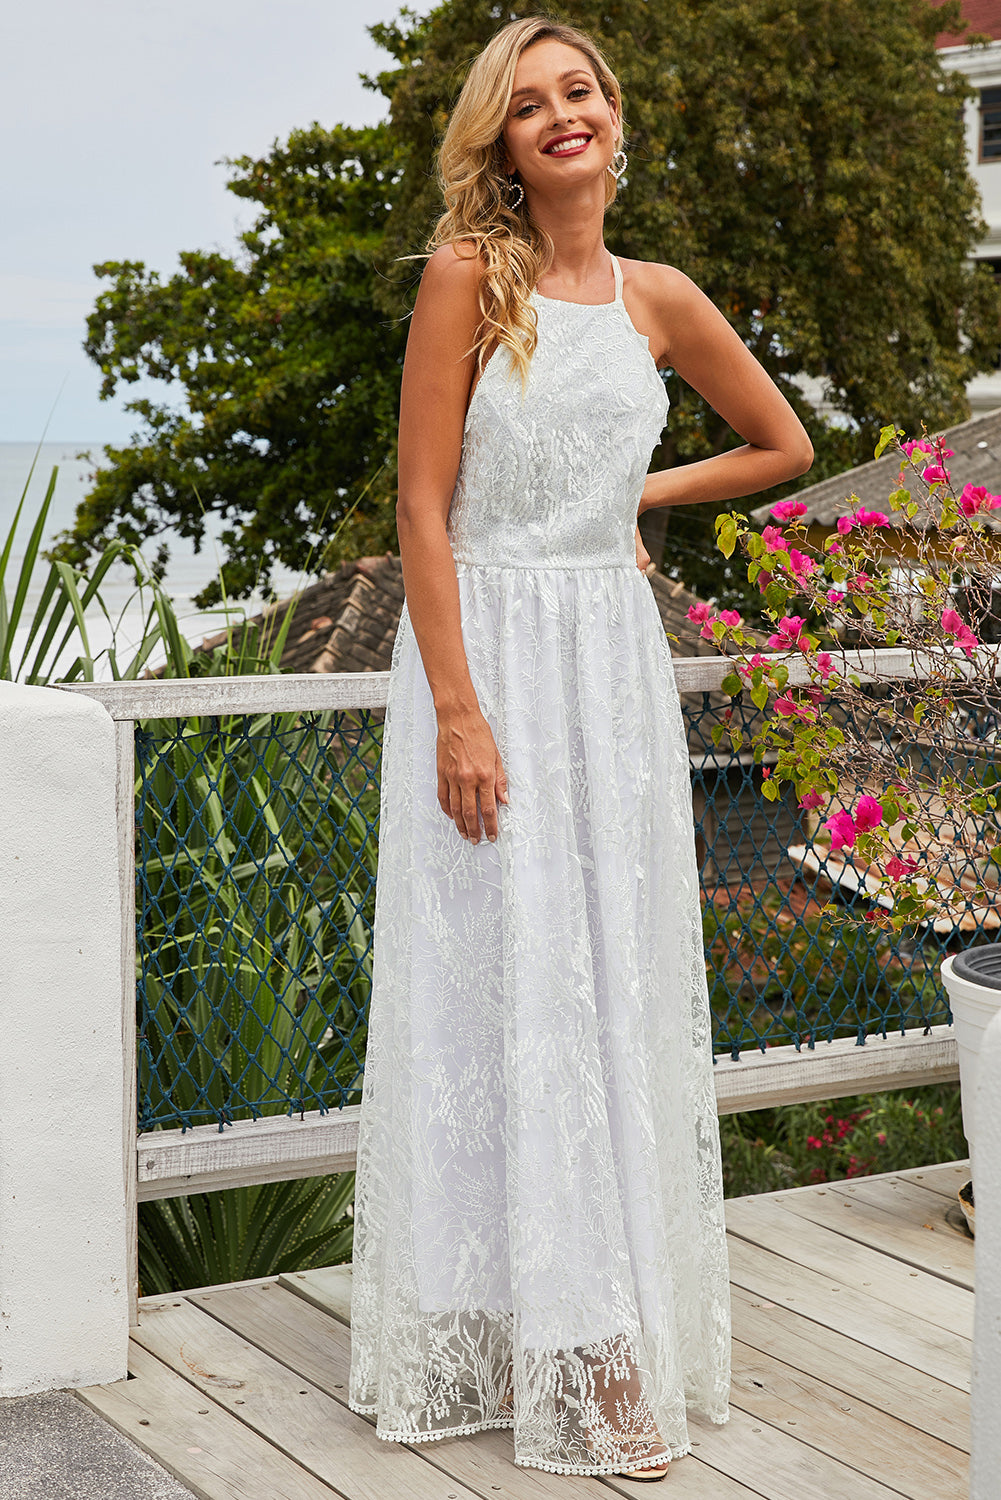 White Wedding Day Ball Party Lace Maxi Dress Evening Dresses Discount Designer Fashion Clothes Shoes Bags Women Men Kids Children Black Owned Business